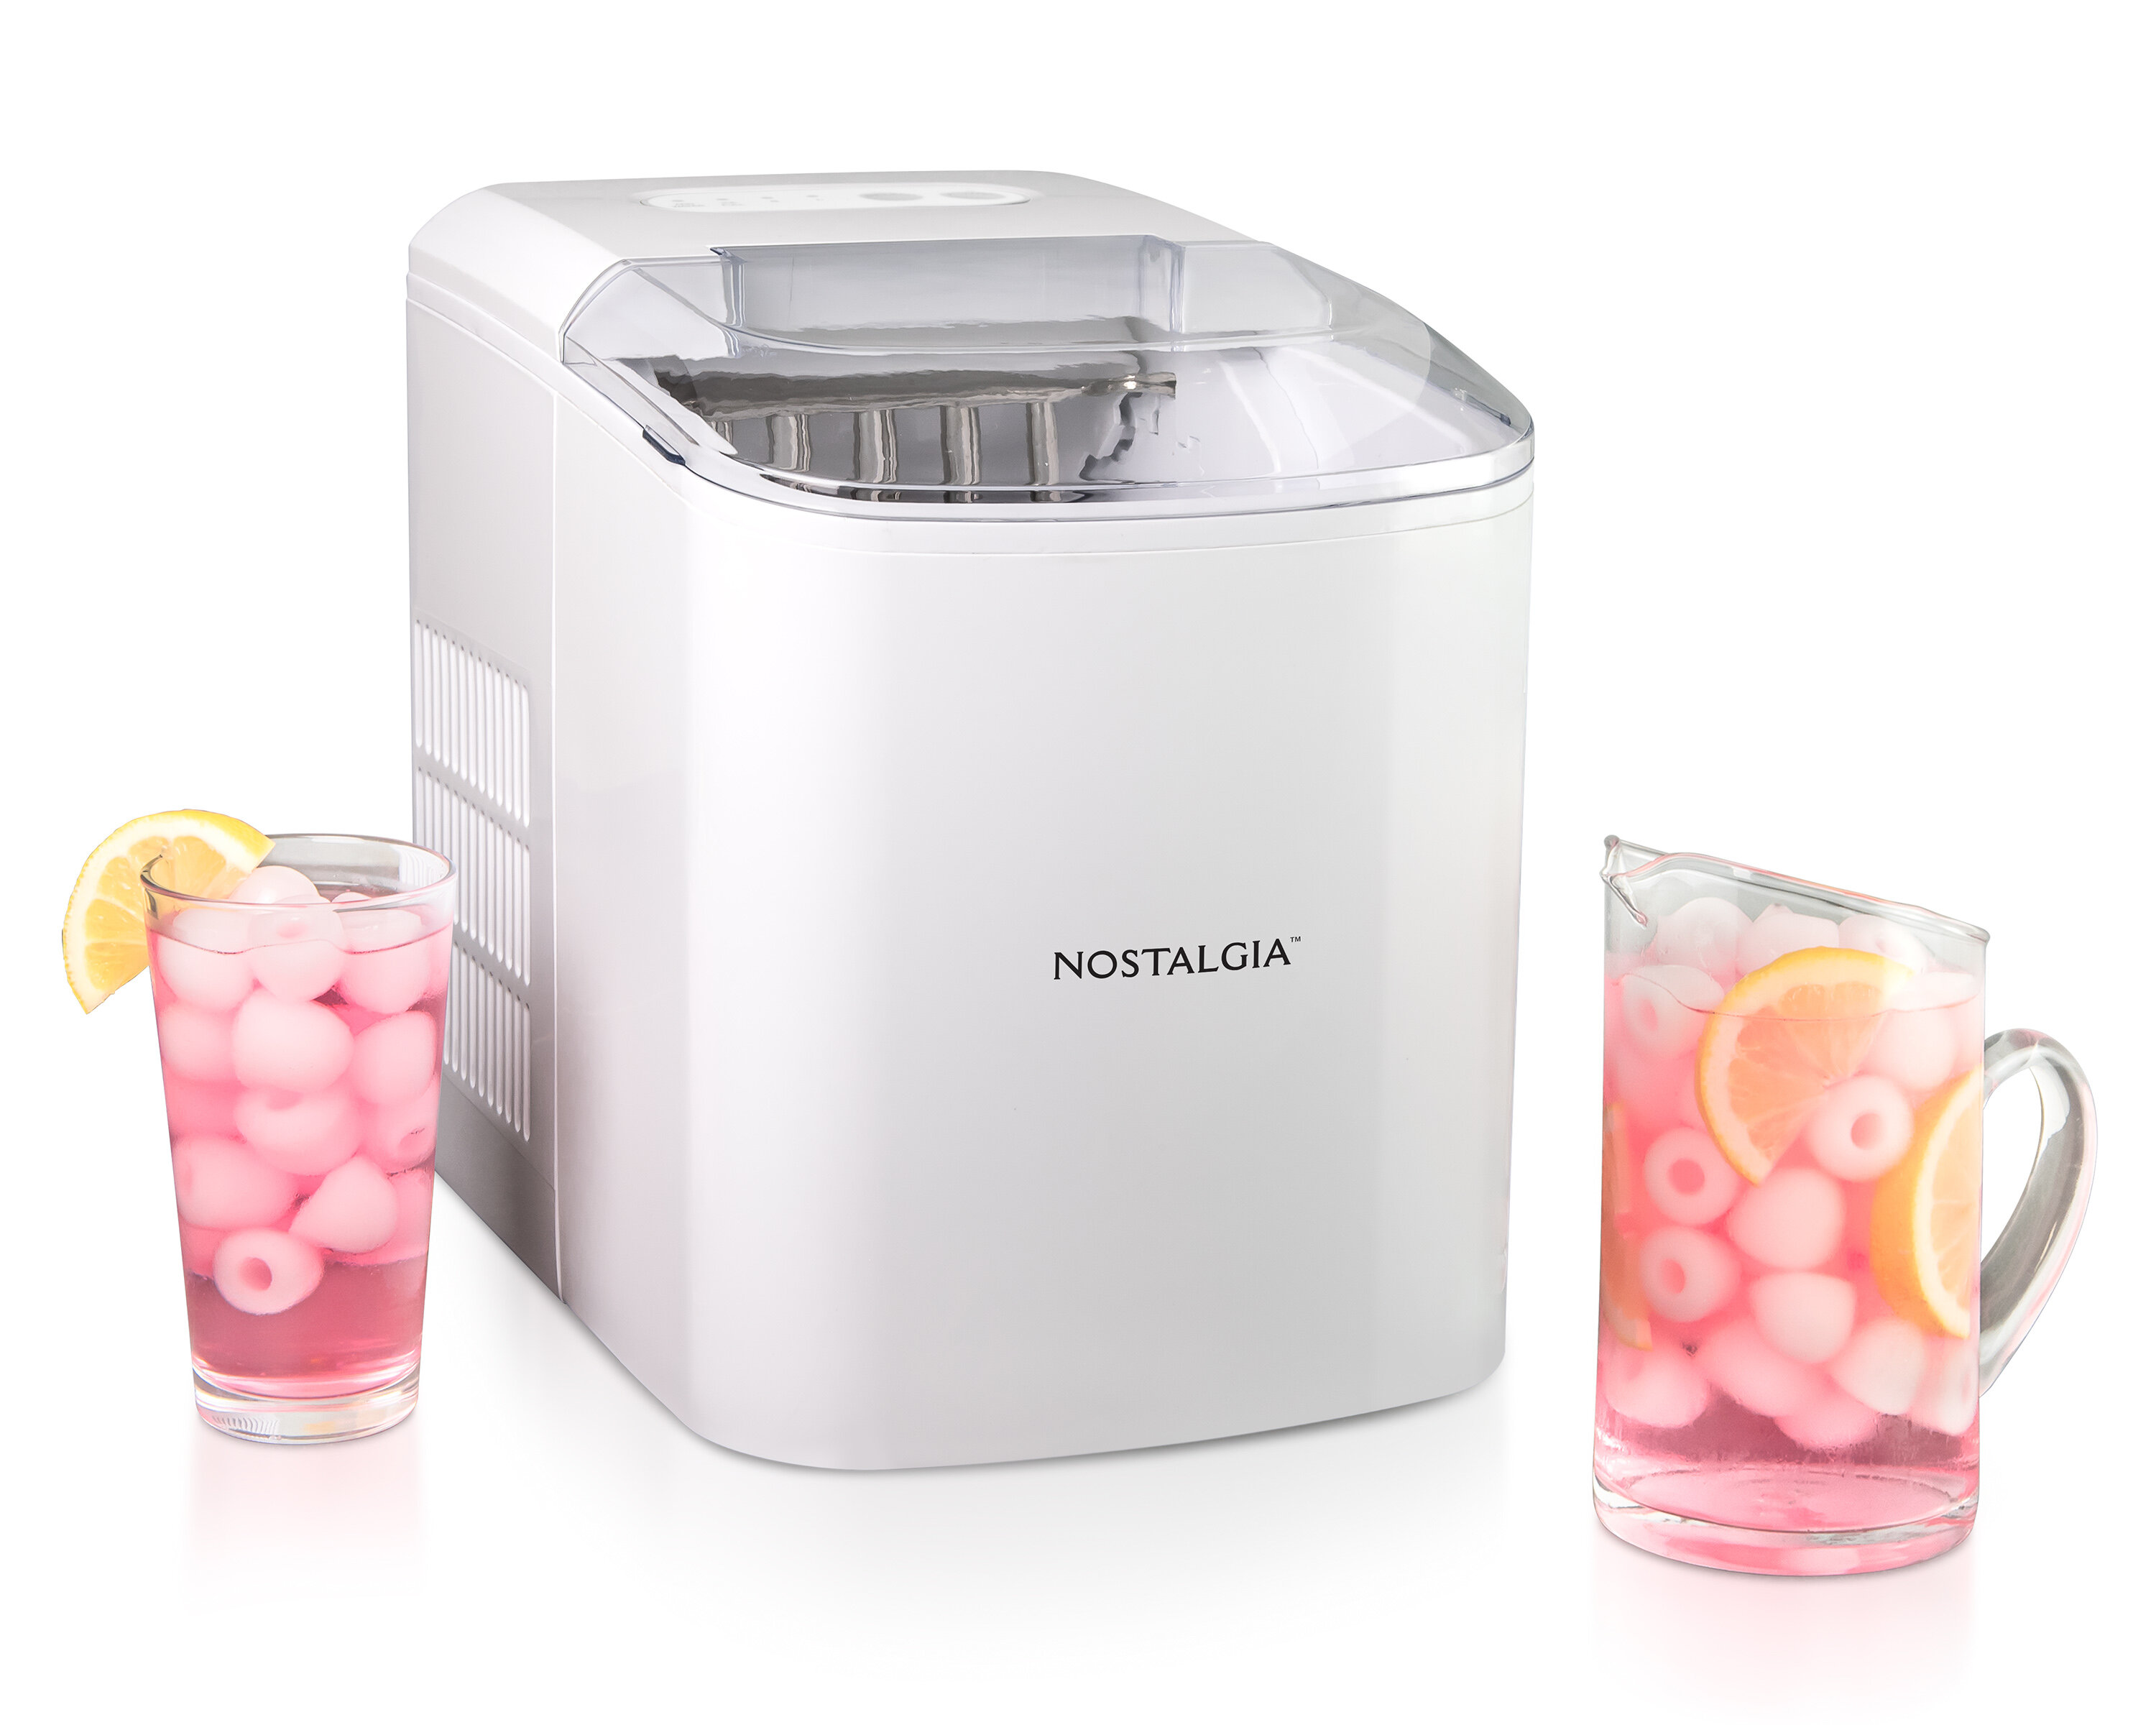 maker appliances news print opal launches ice first countertops pressroom countertop ge cocktails nugget home for use icemaker